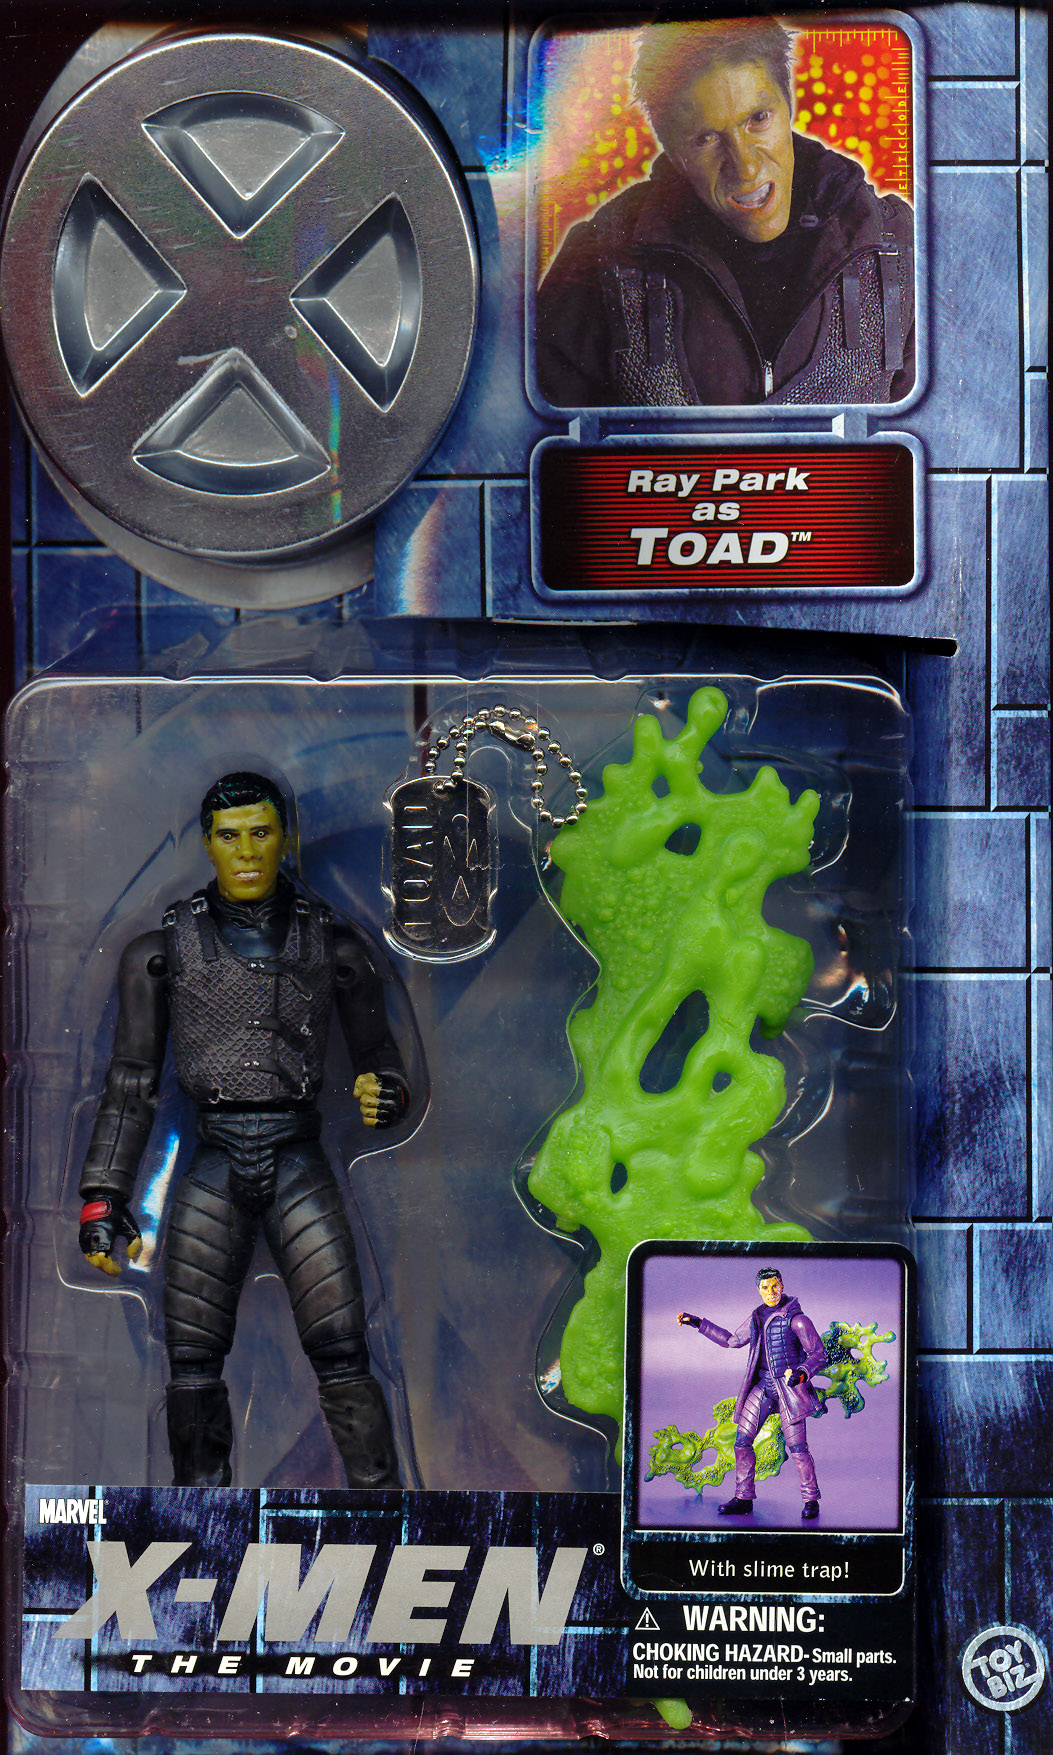 Toad (X-Men Movie, series 2)